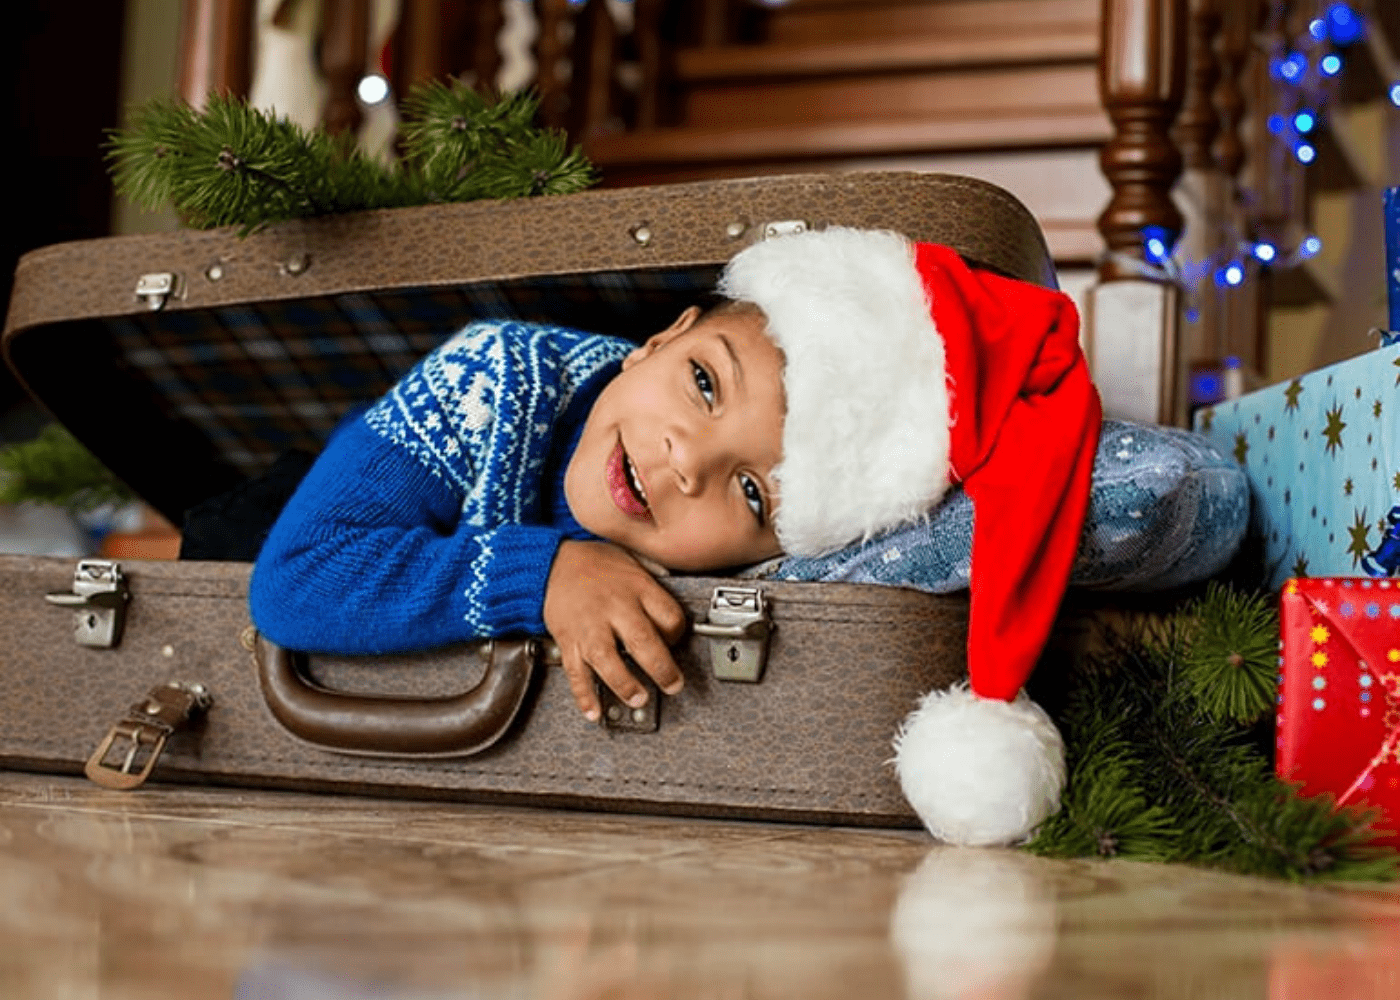 Packing for an overseas Christmas with kids: how to limit and manage your luggage